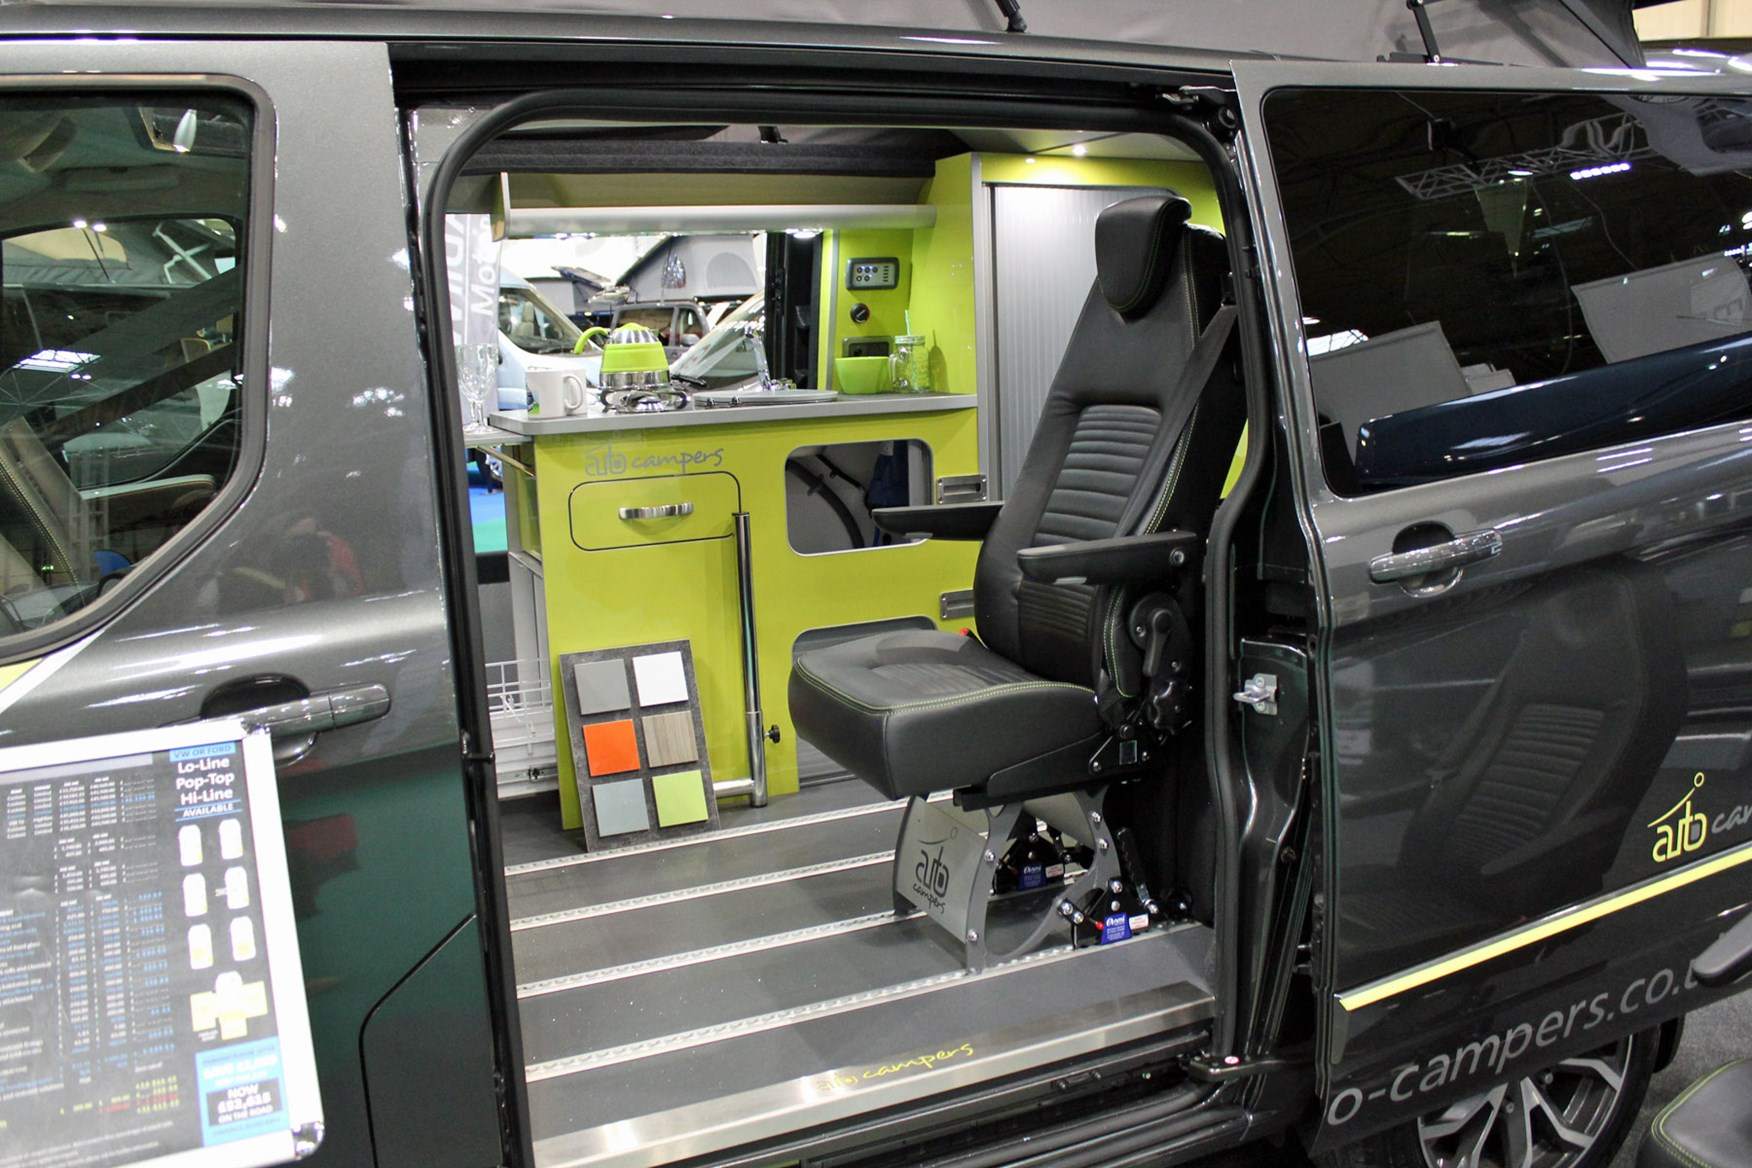 Campervans at the 2019 Caravan, Camping and Motorhome Show